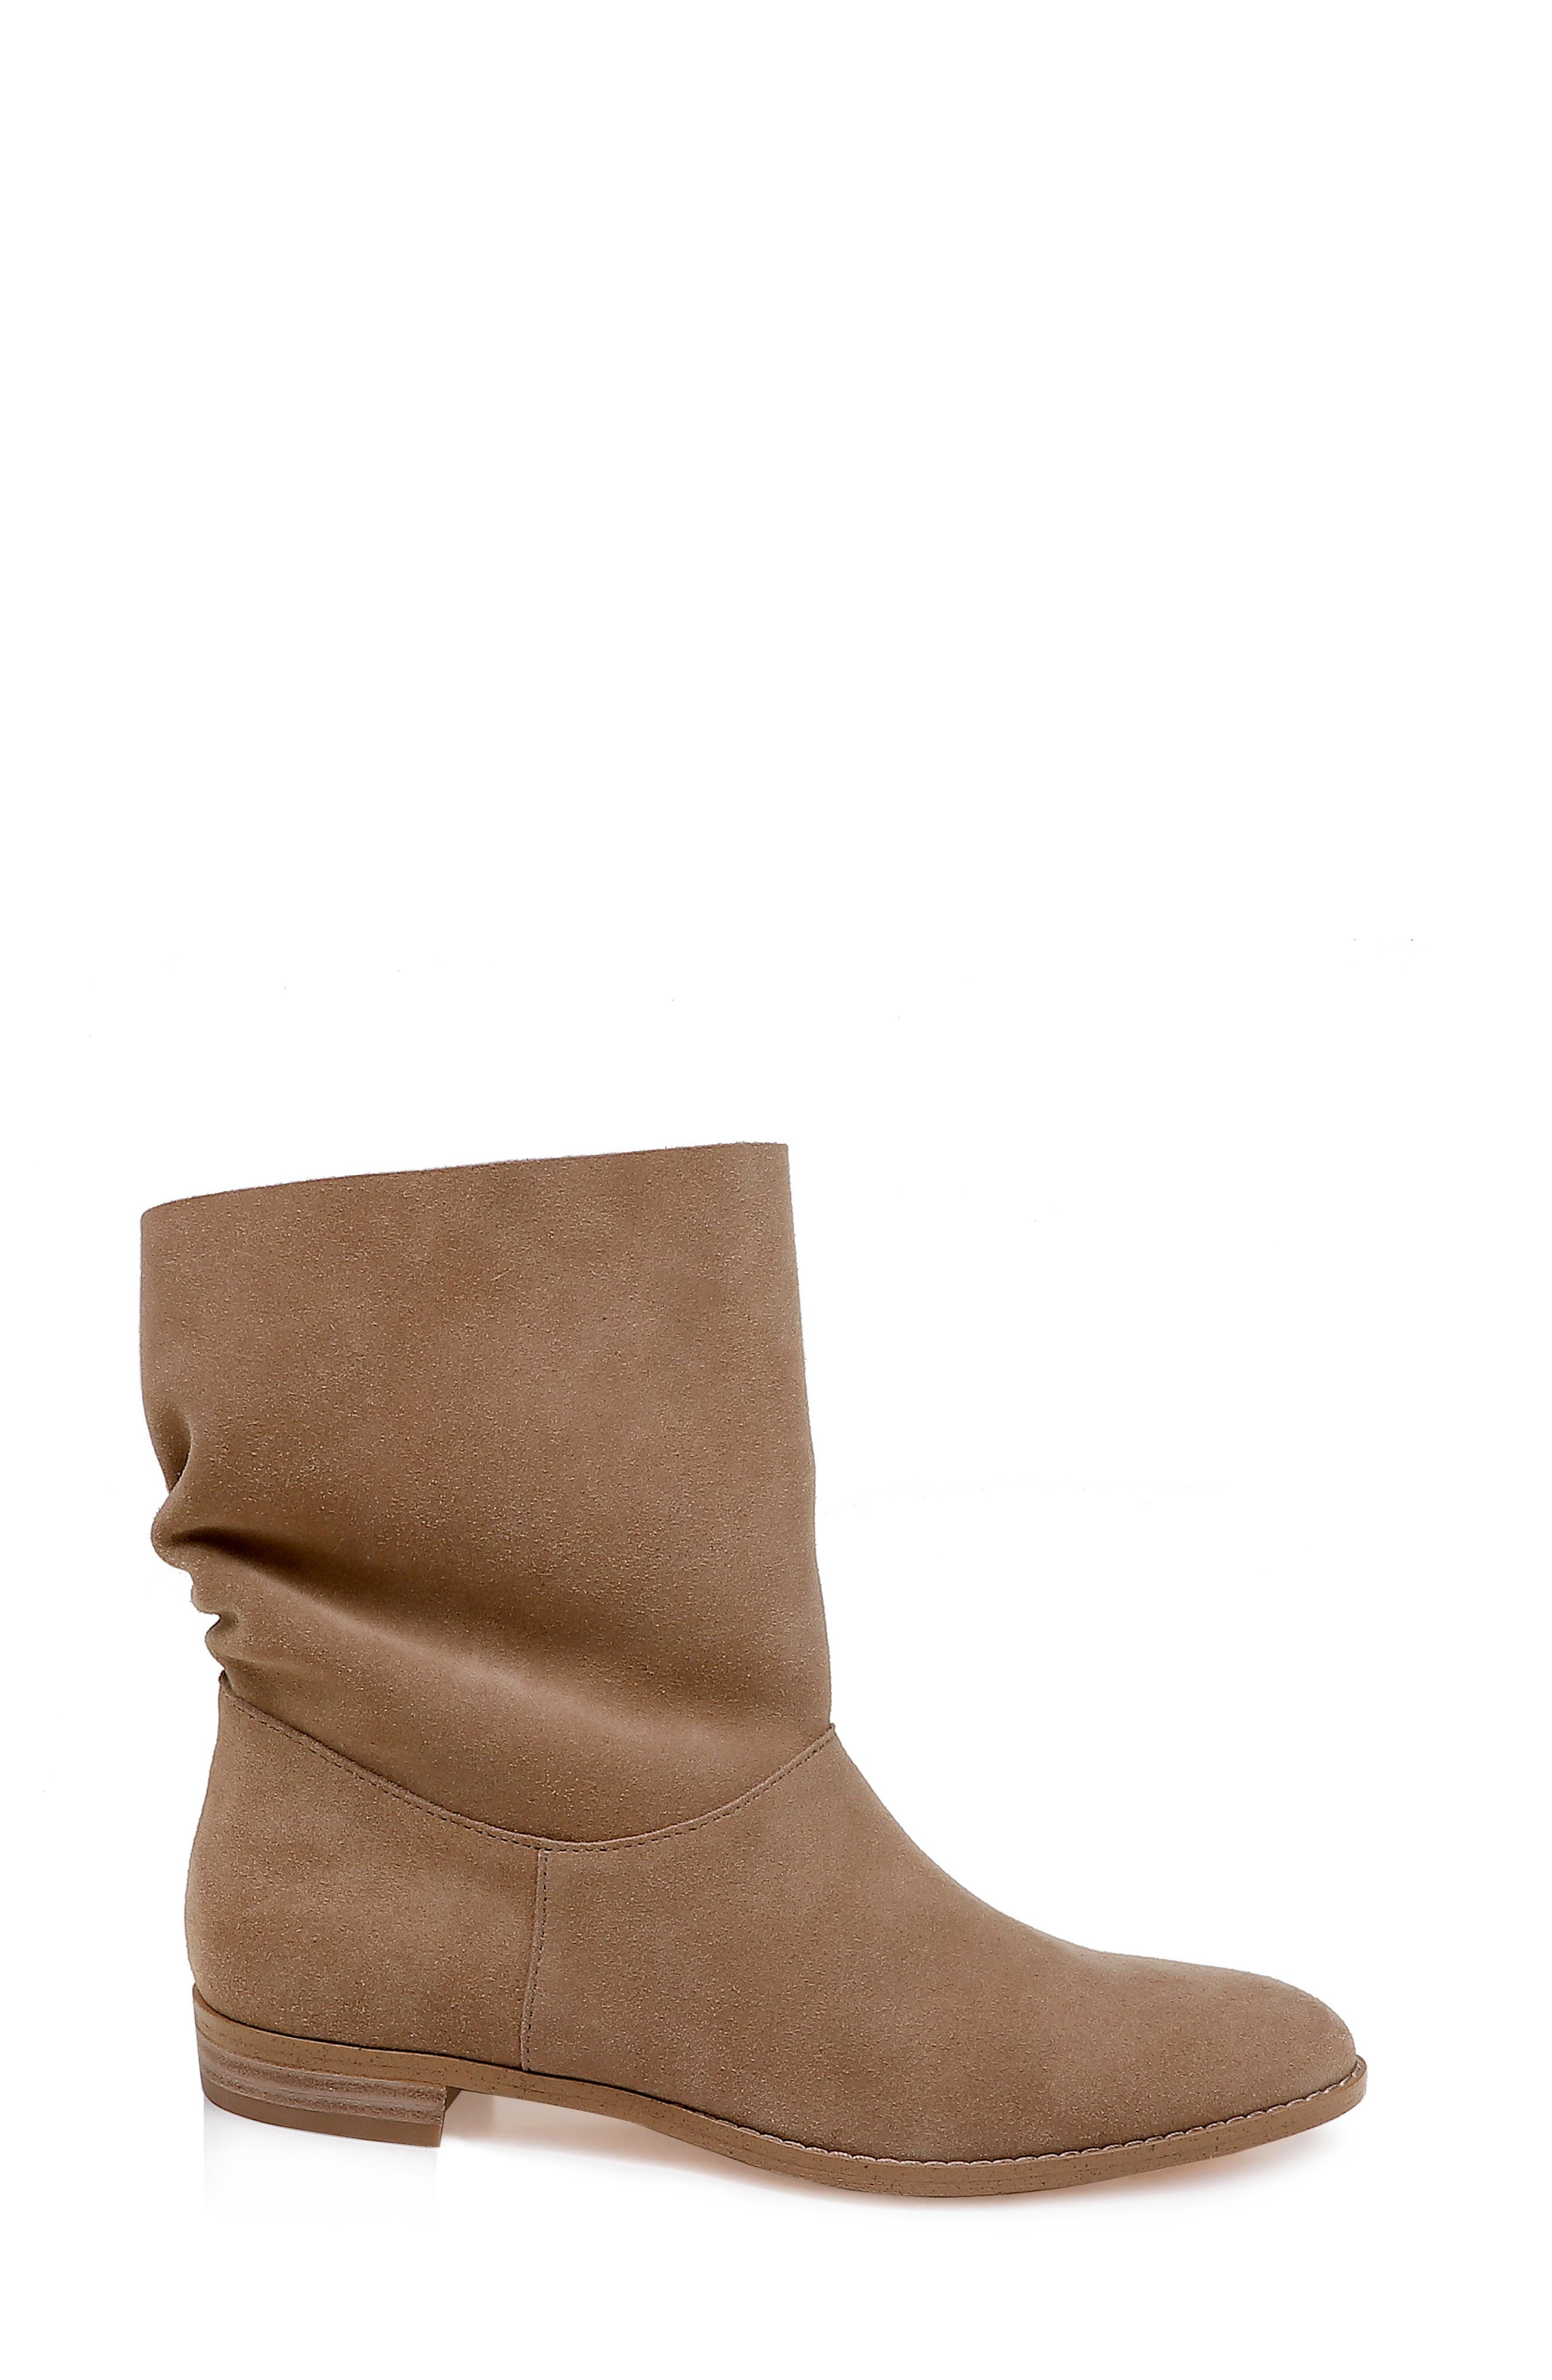 Claudia Slouch Bootie,                             Alternate thumbnail 3, color,                             OAT SUEDE